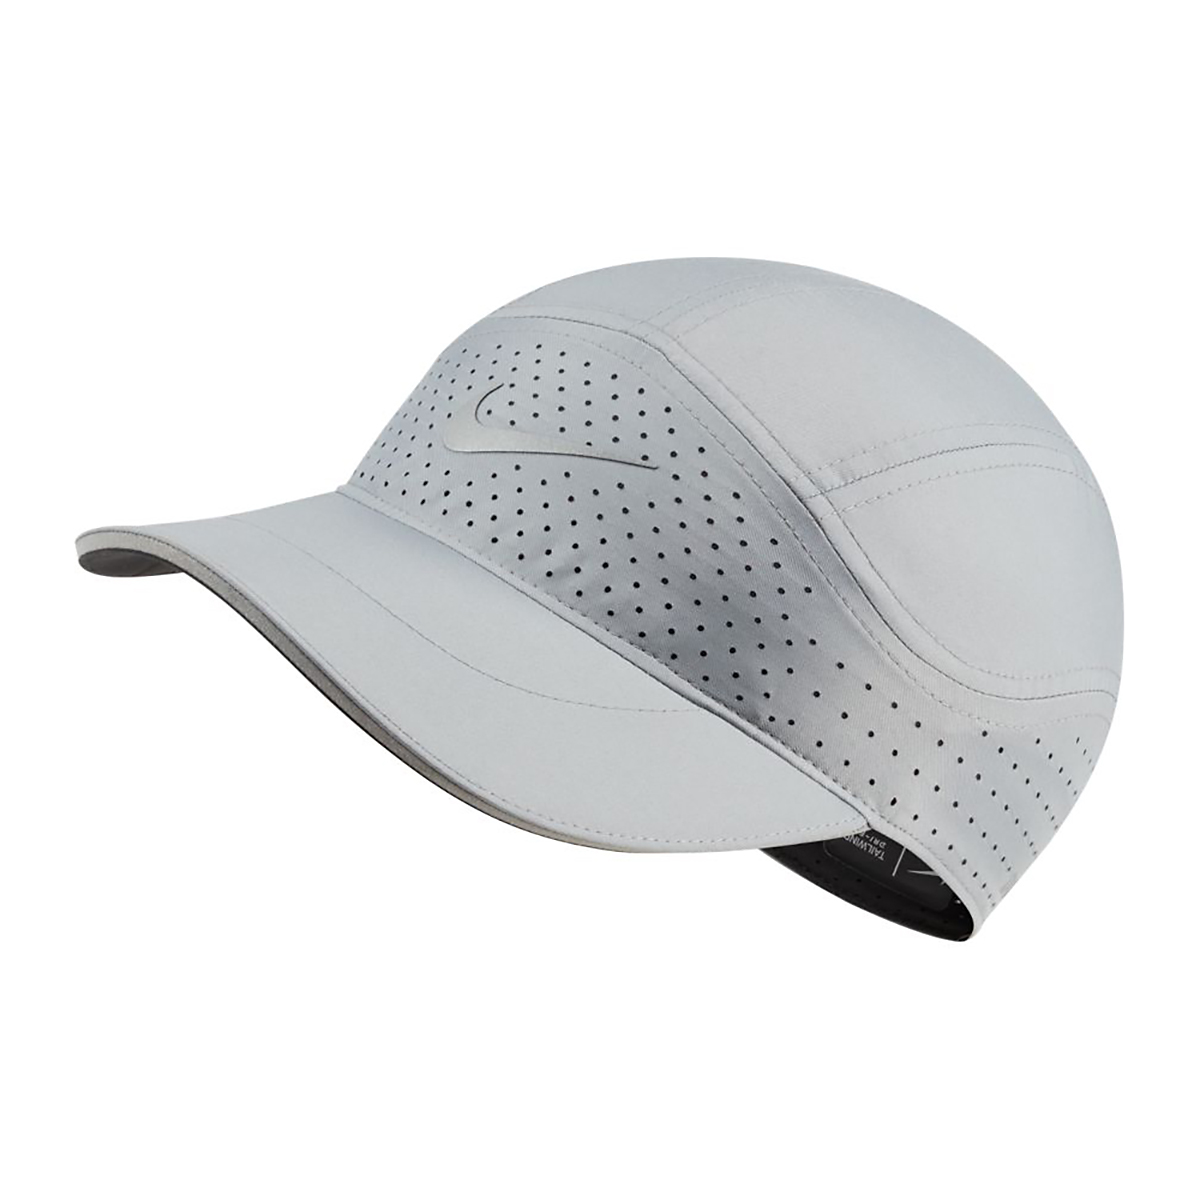 Women's Nike Aerobill Tailwind Elite Cap - Color: Grey, Grey, large, image 1